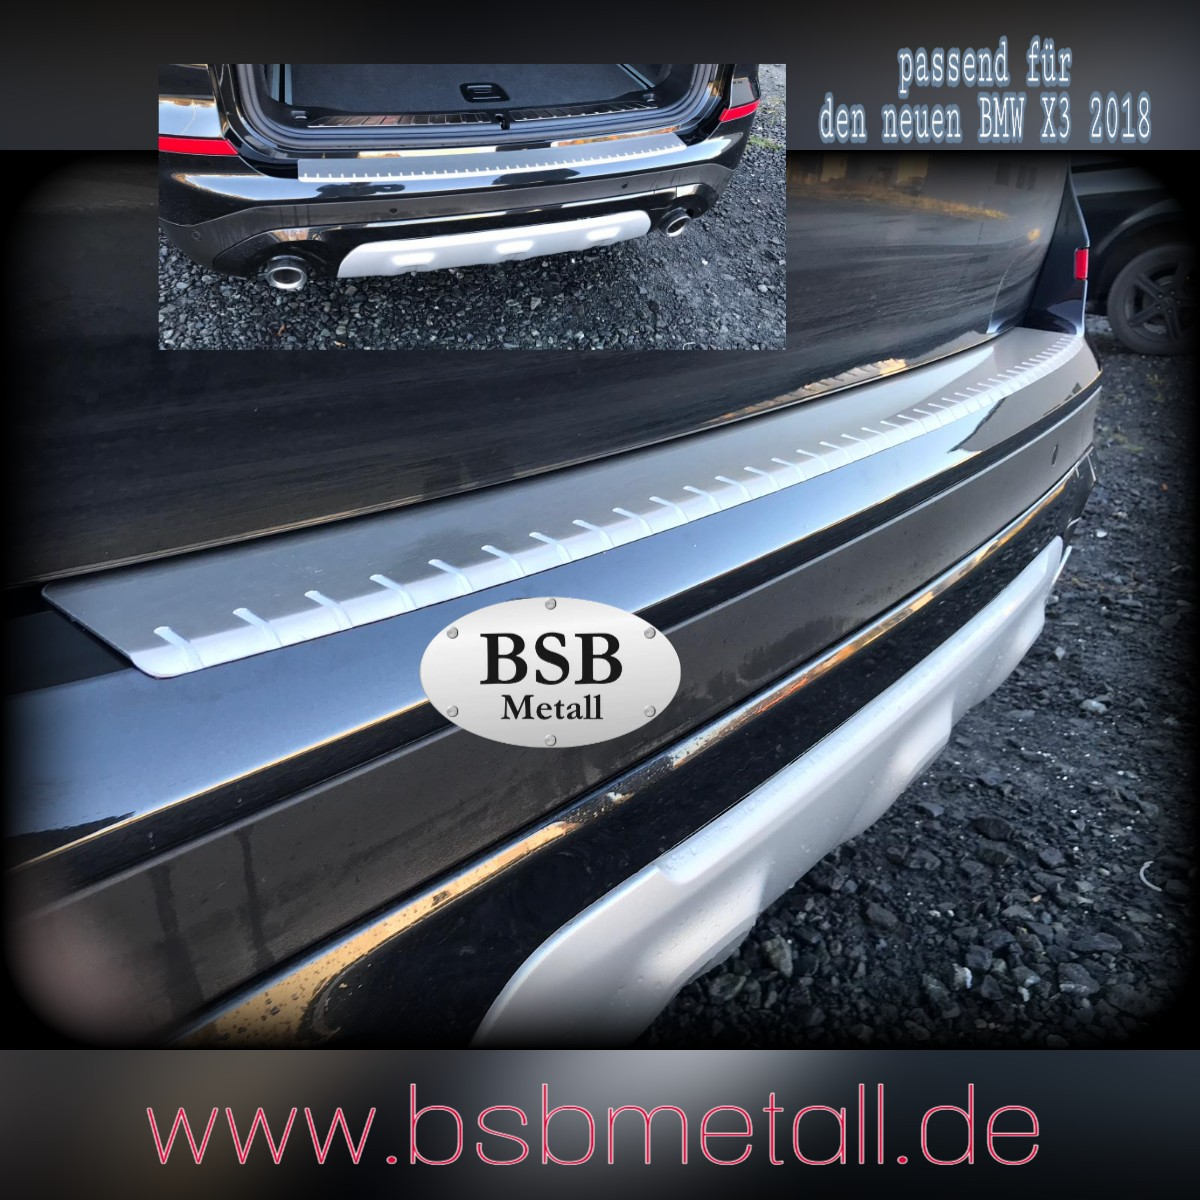 BSB Metall GmbH & Co. KG